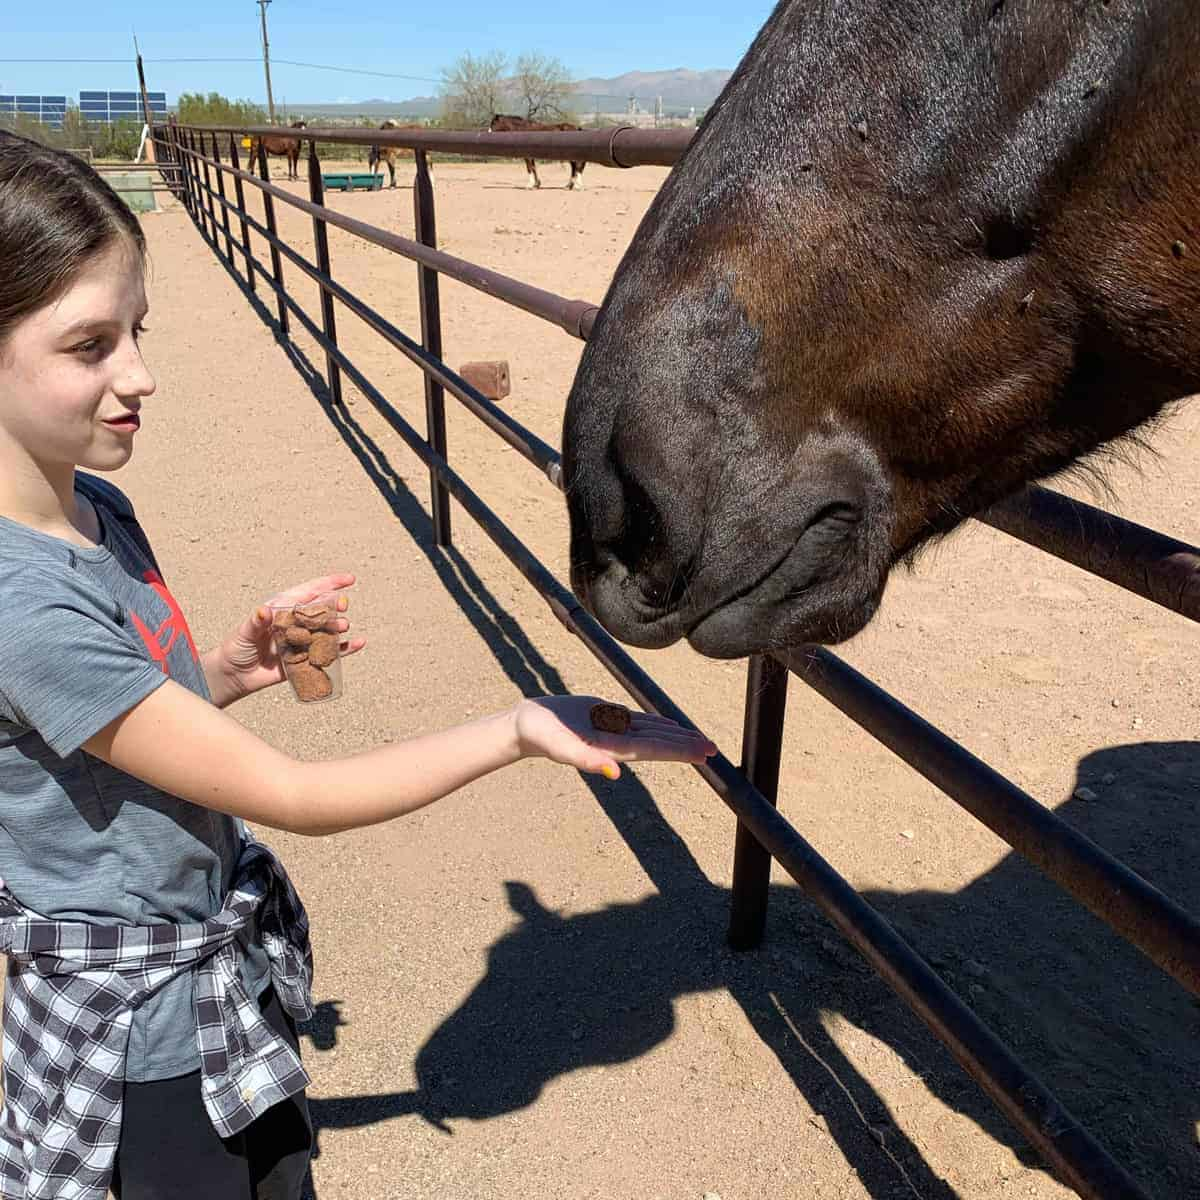 White Stallion Ranch, the Best All-Inclusive Resort in Arizona showing a young girl feeding a treat to a brown horse.